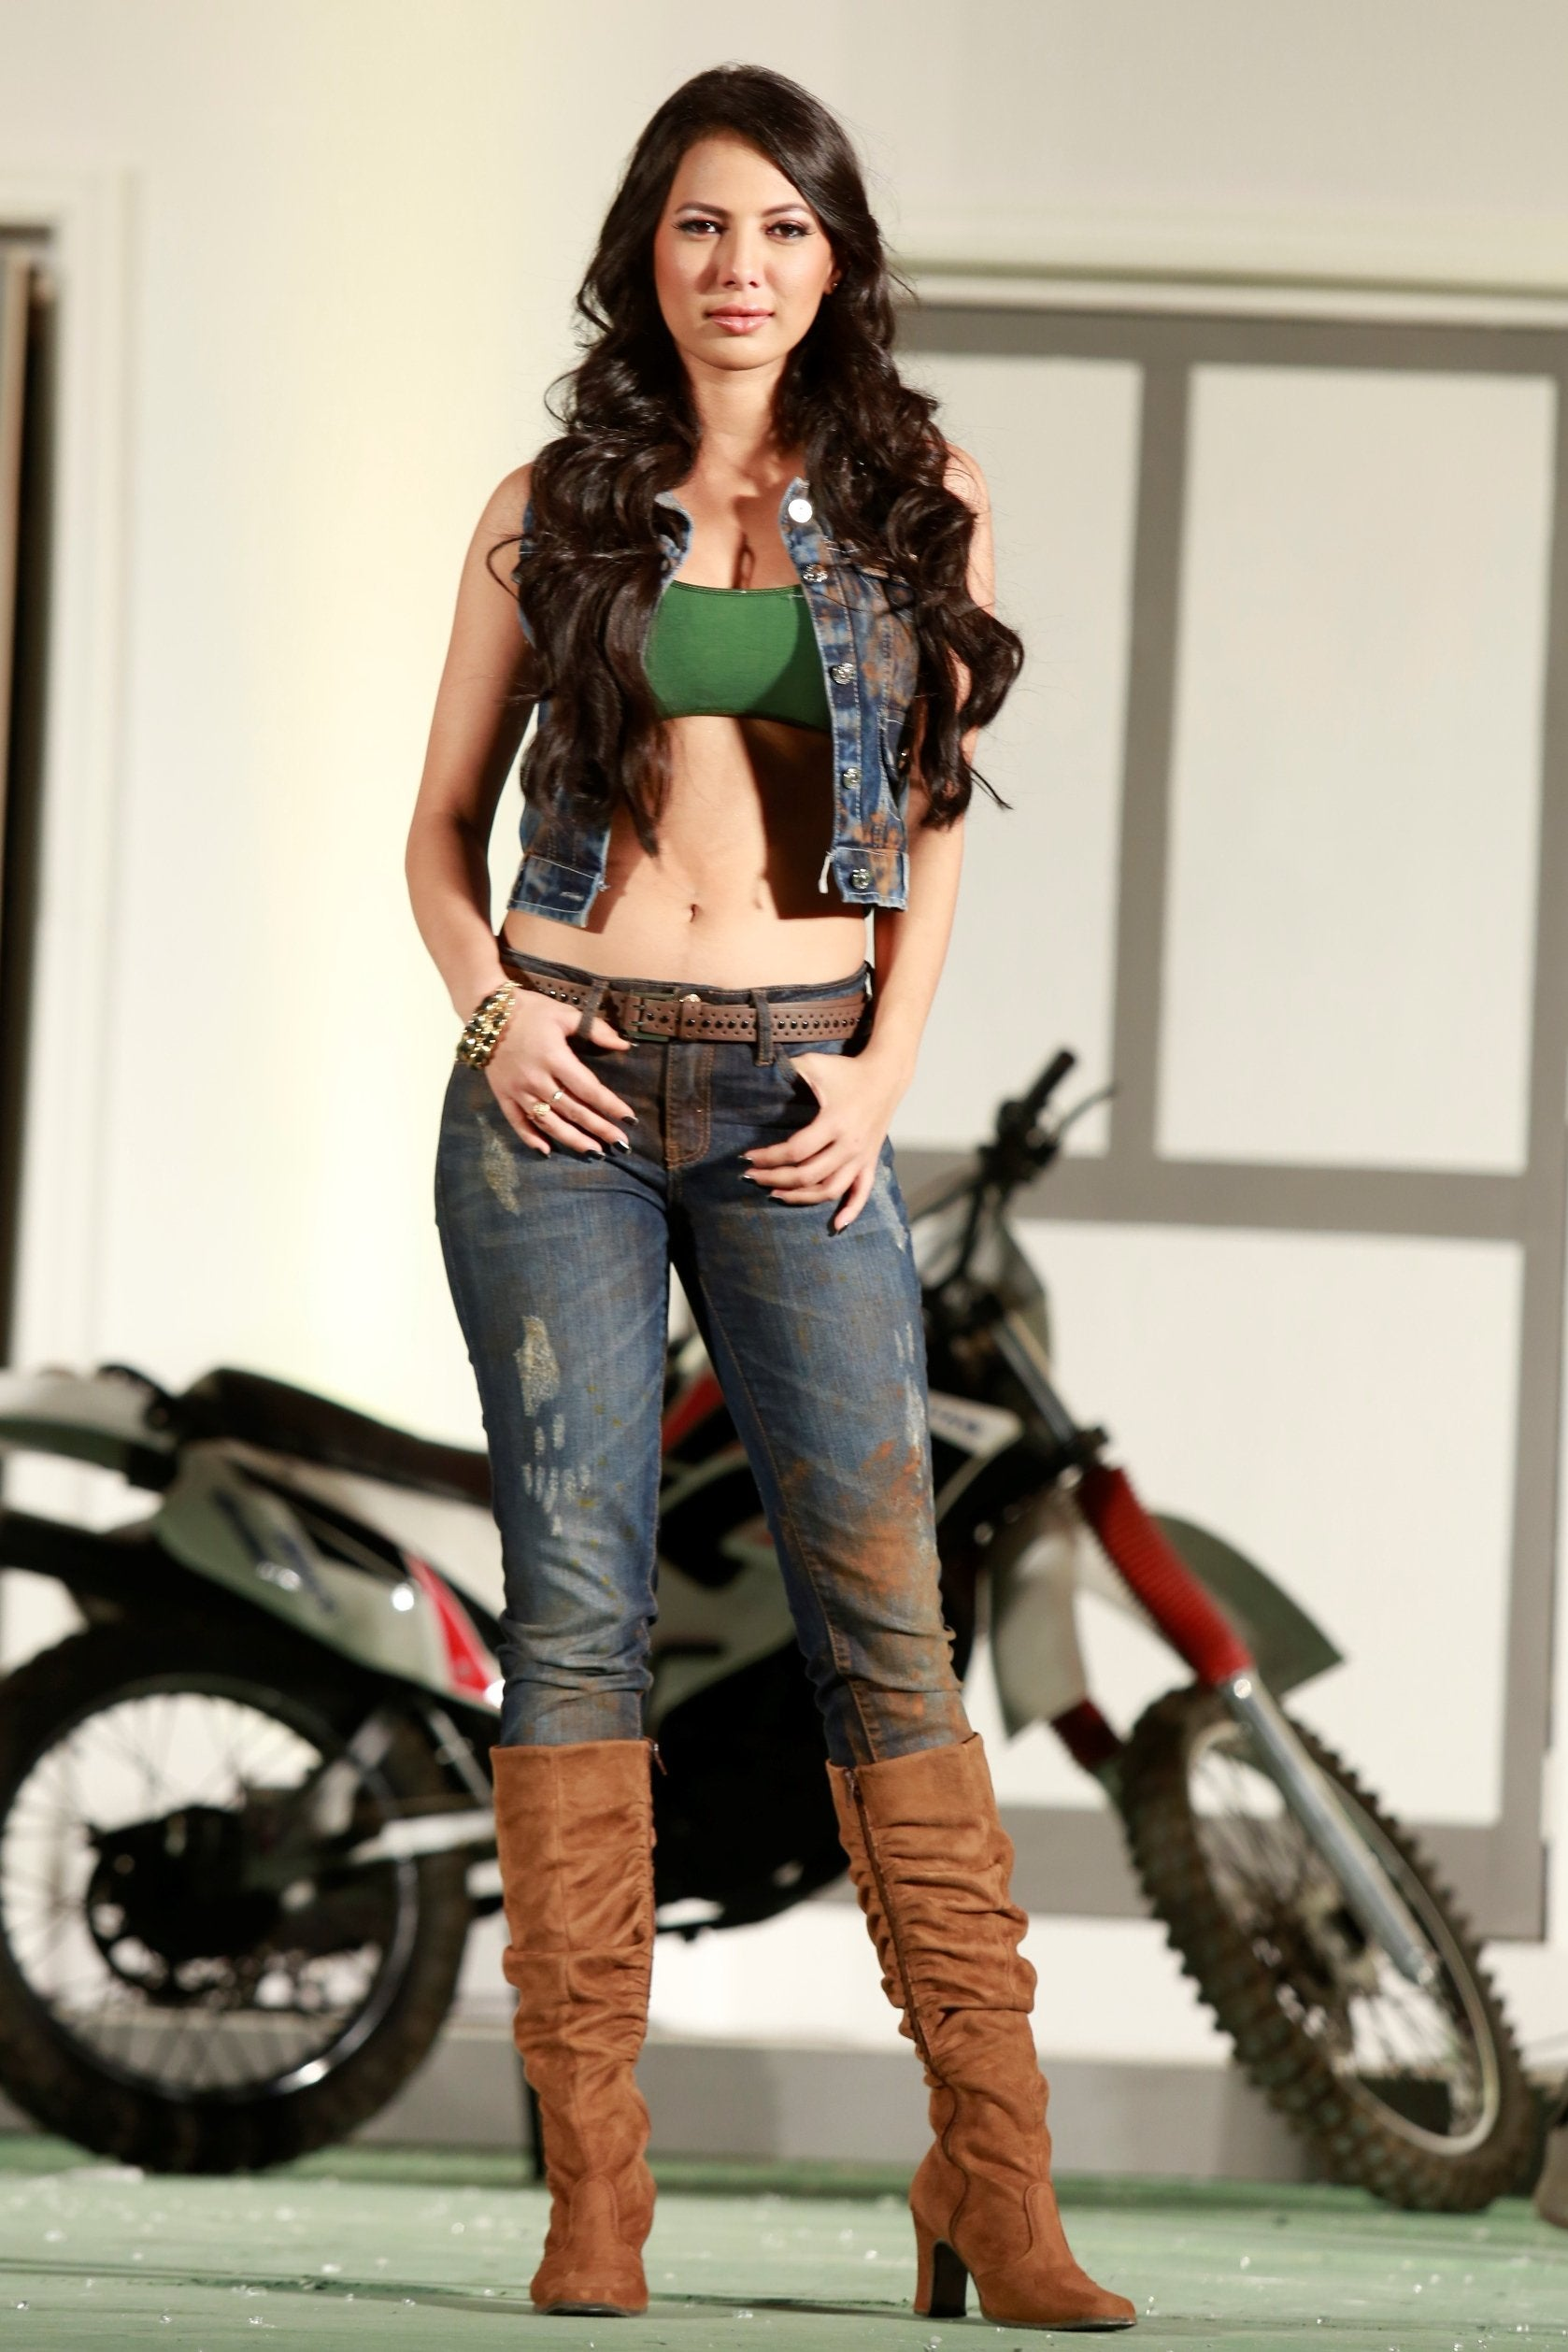 This model has also appeared in Bigg Boss.